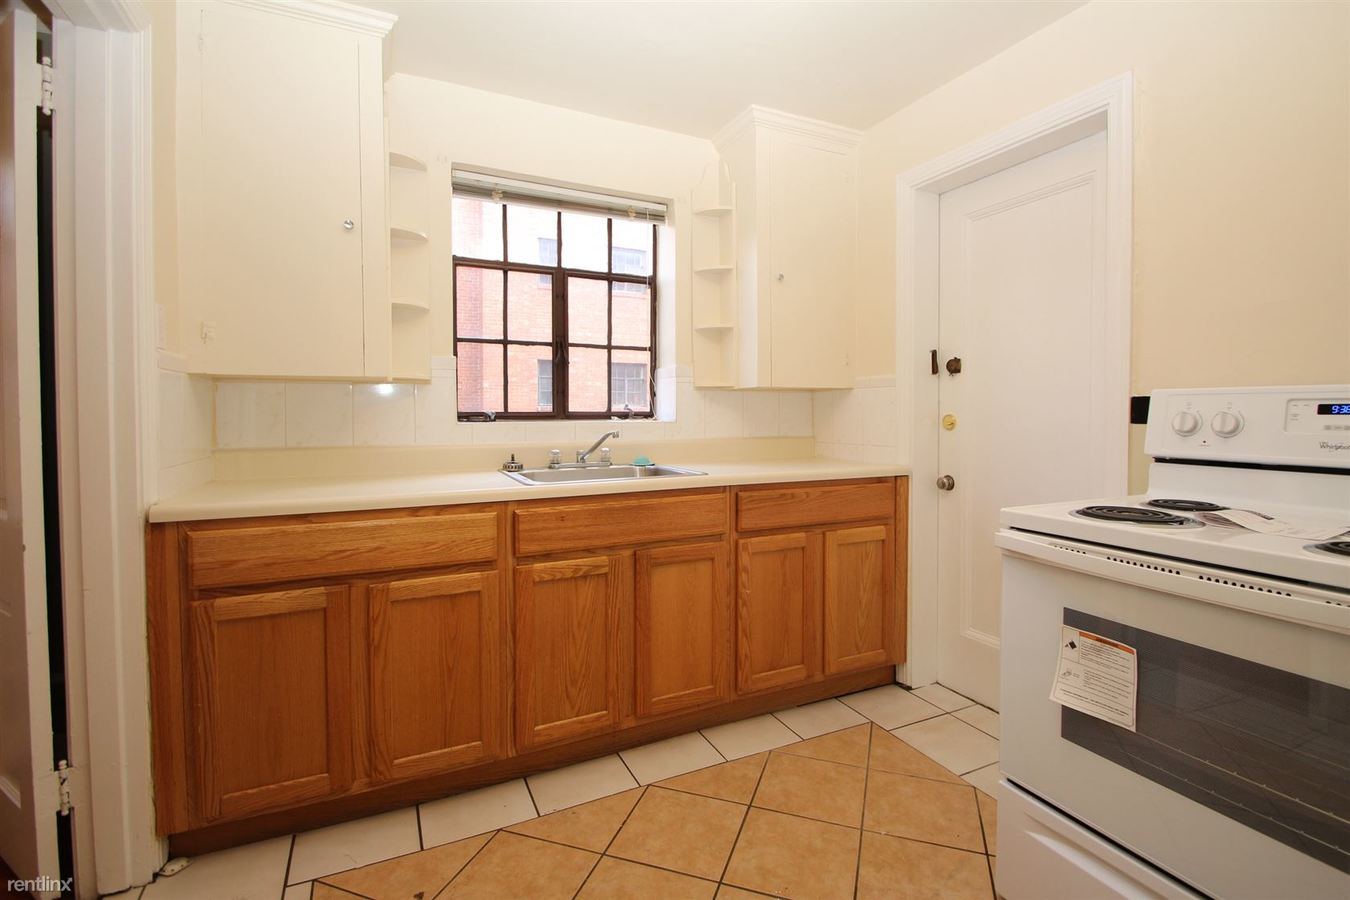 2 Bedrooms 1 Bathroom Apartment for rent at Bellevue Gables in Pittsburgh, PA